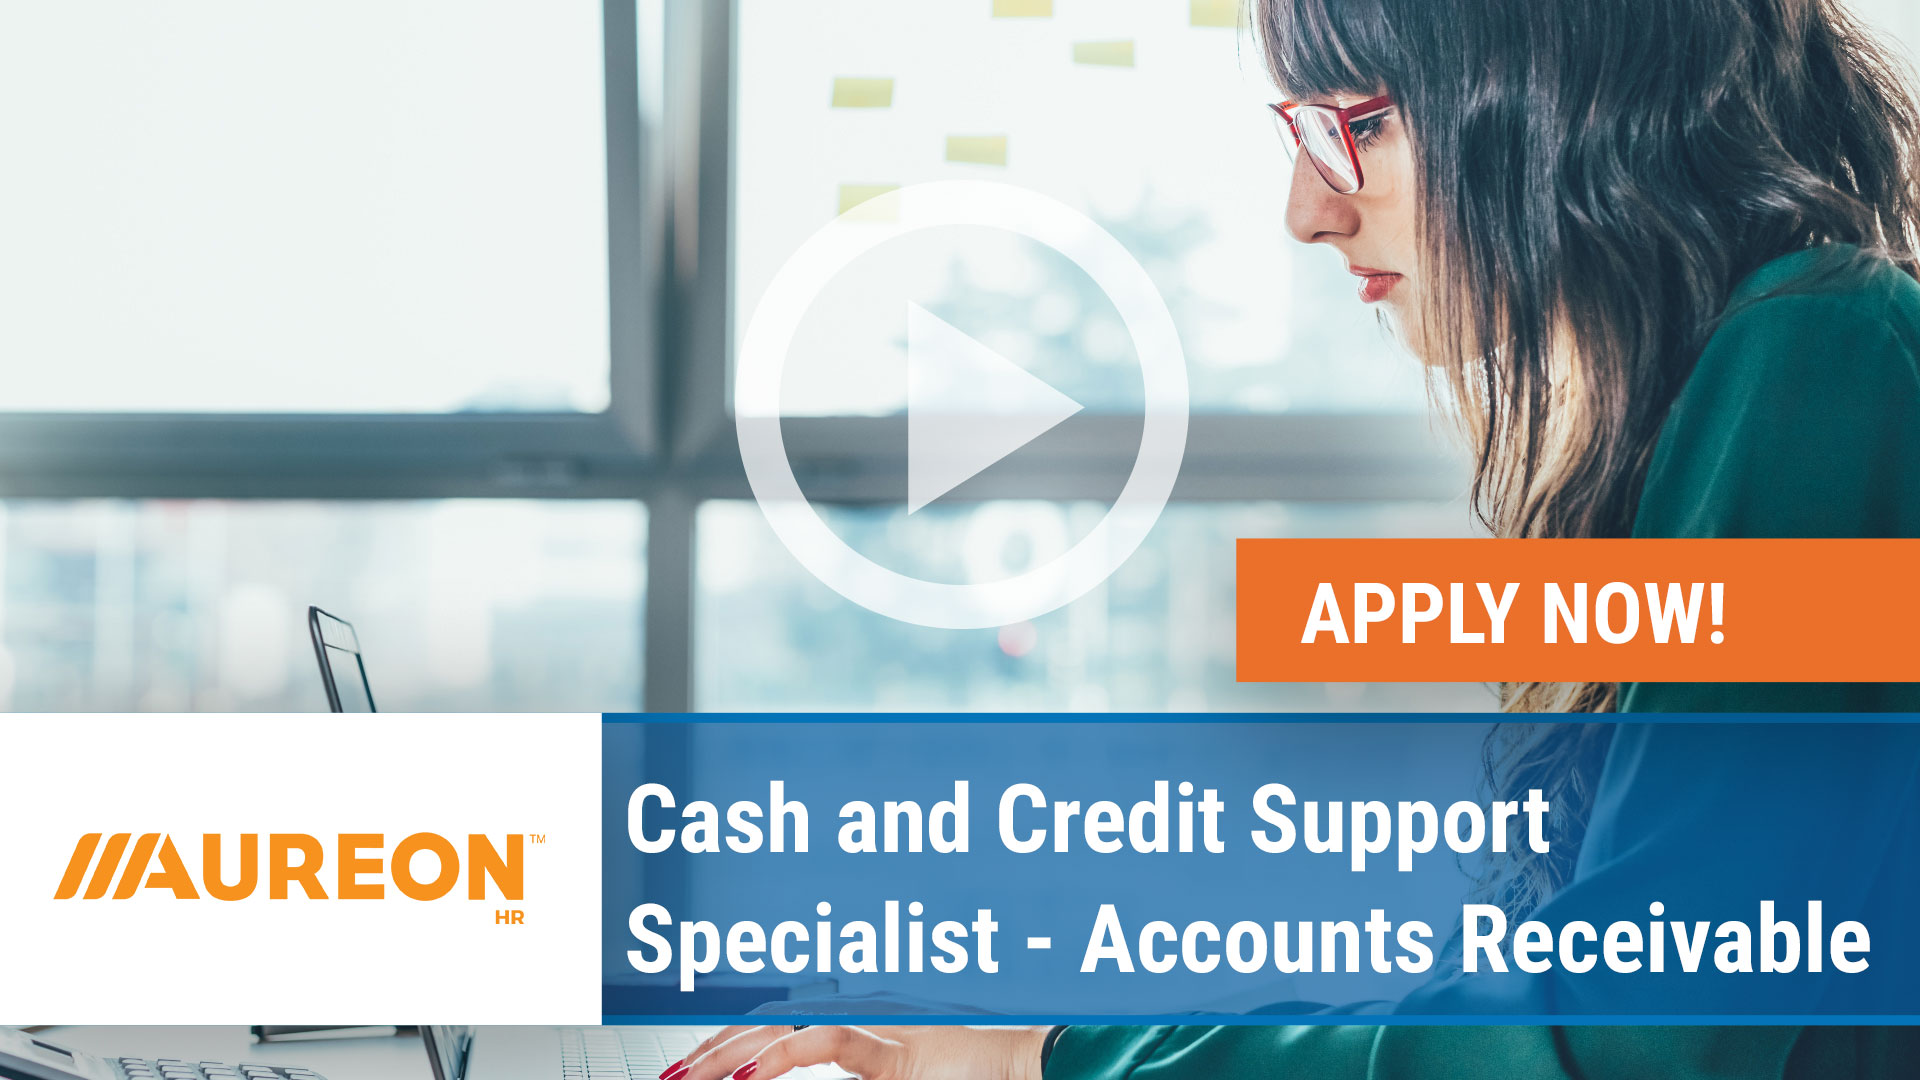 Watch our careers video for available job opening Cash and Credit Support Specialist - Accounts Receivable in West Des Moines, Iowa